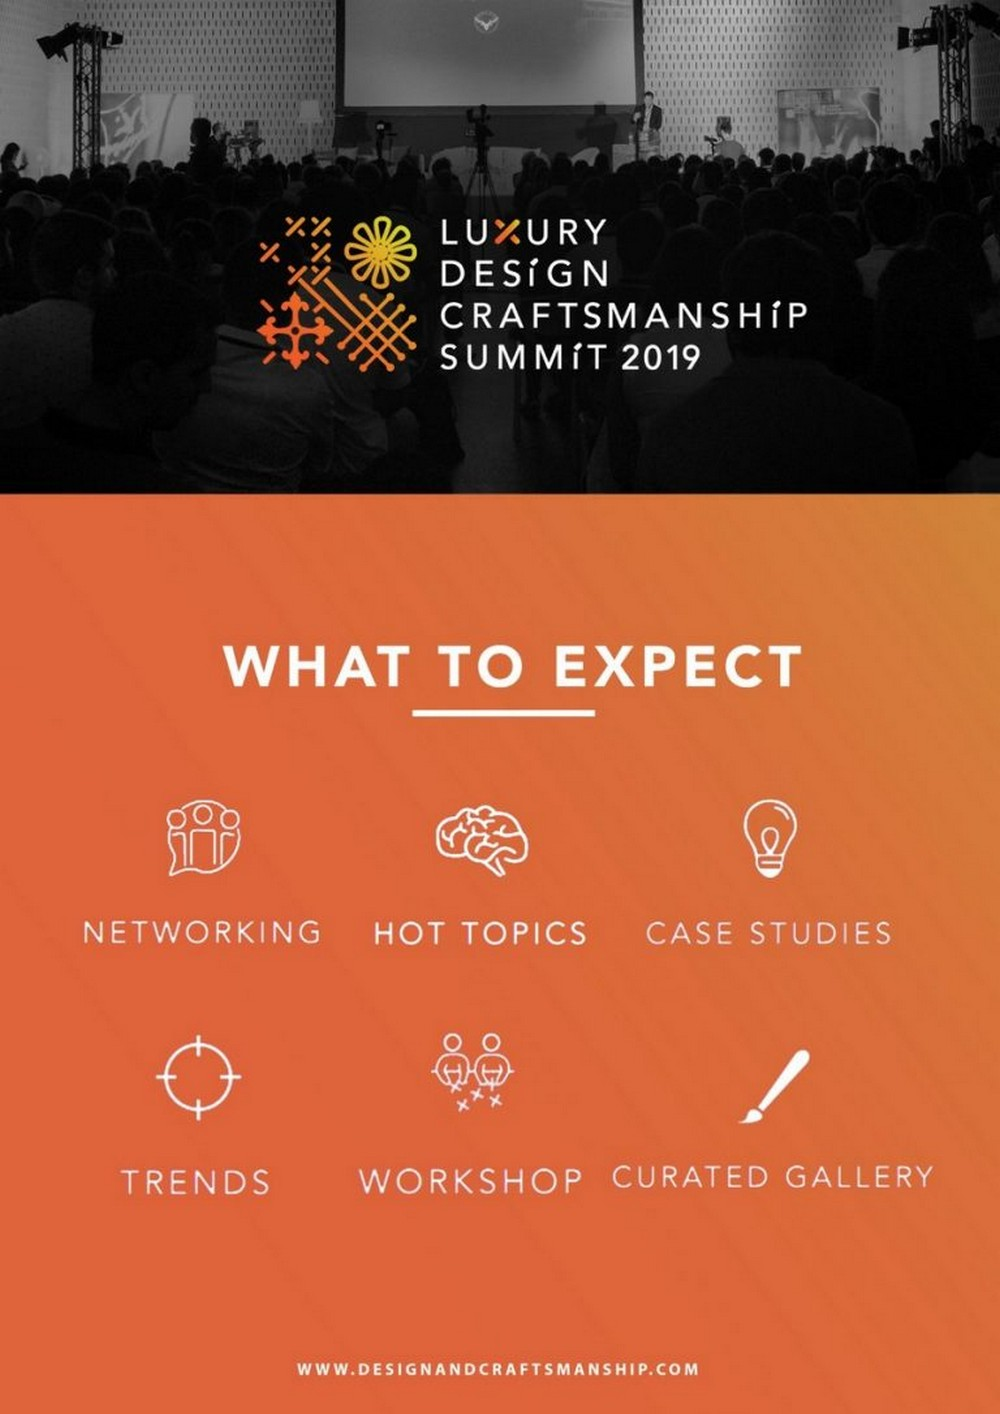 Portugal's Luxury Design & Craftsmanship Summit Is Back To Porto! luxury design Portugal's Luxury Design & Craftsmanship Summit Is Back To Porto! Portugals Luxury Design Craftsmanship Summit Is Back To Porto